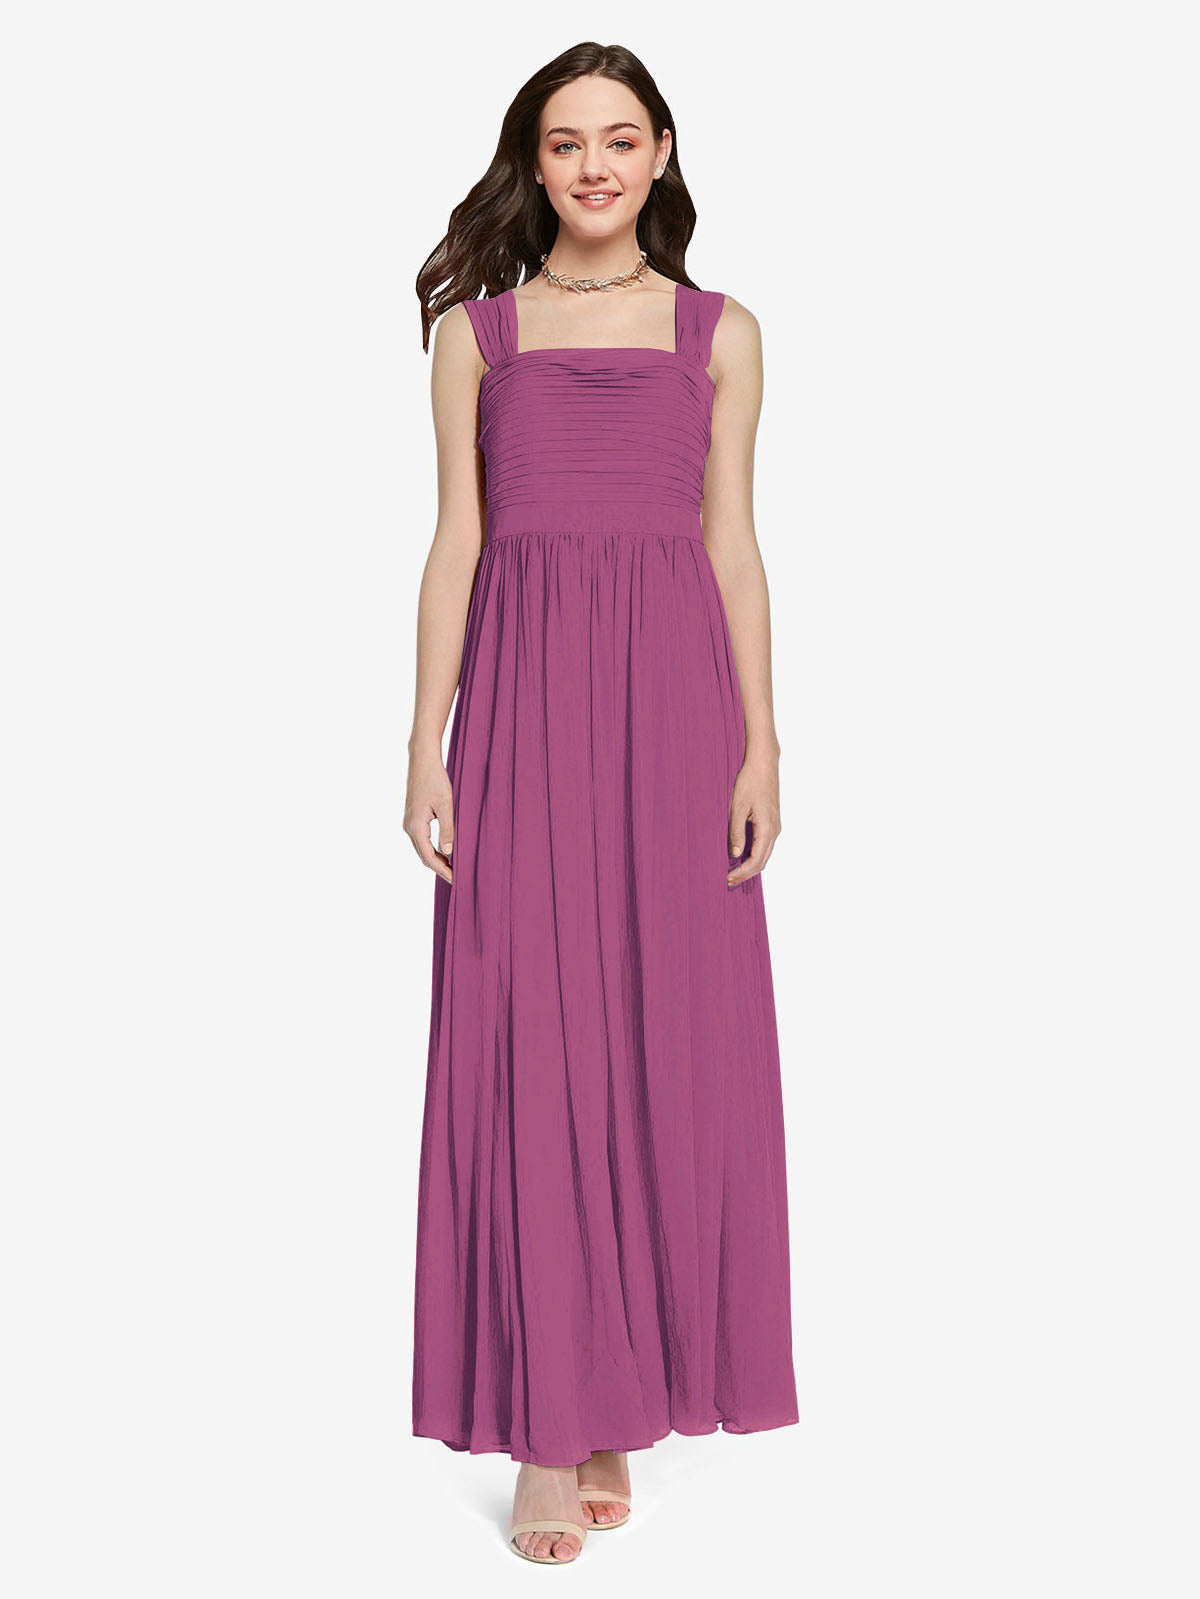 Long A-Line Square Sleeveless Wild Berry Chiffon Bridesmaid Dress Aldridge